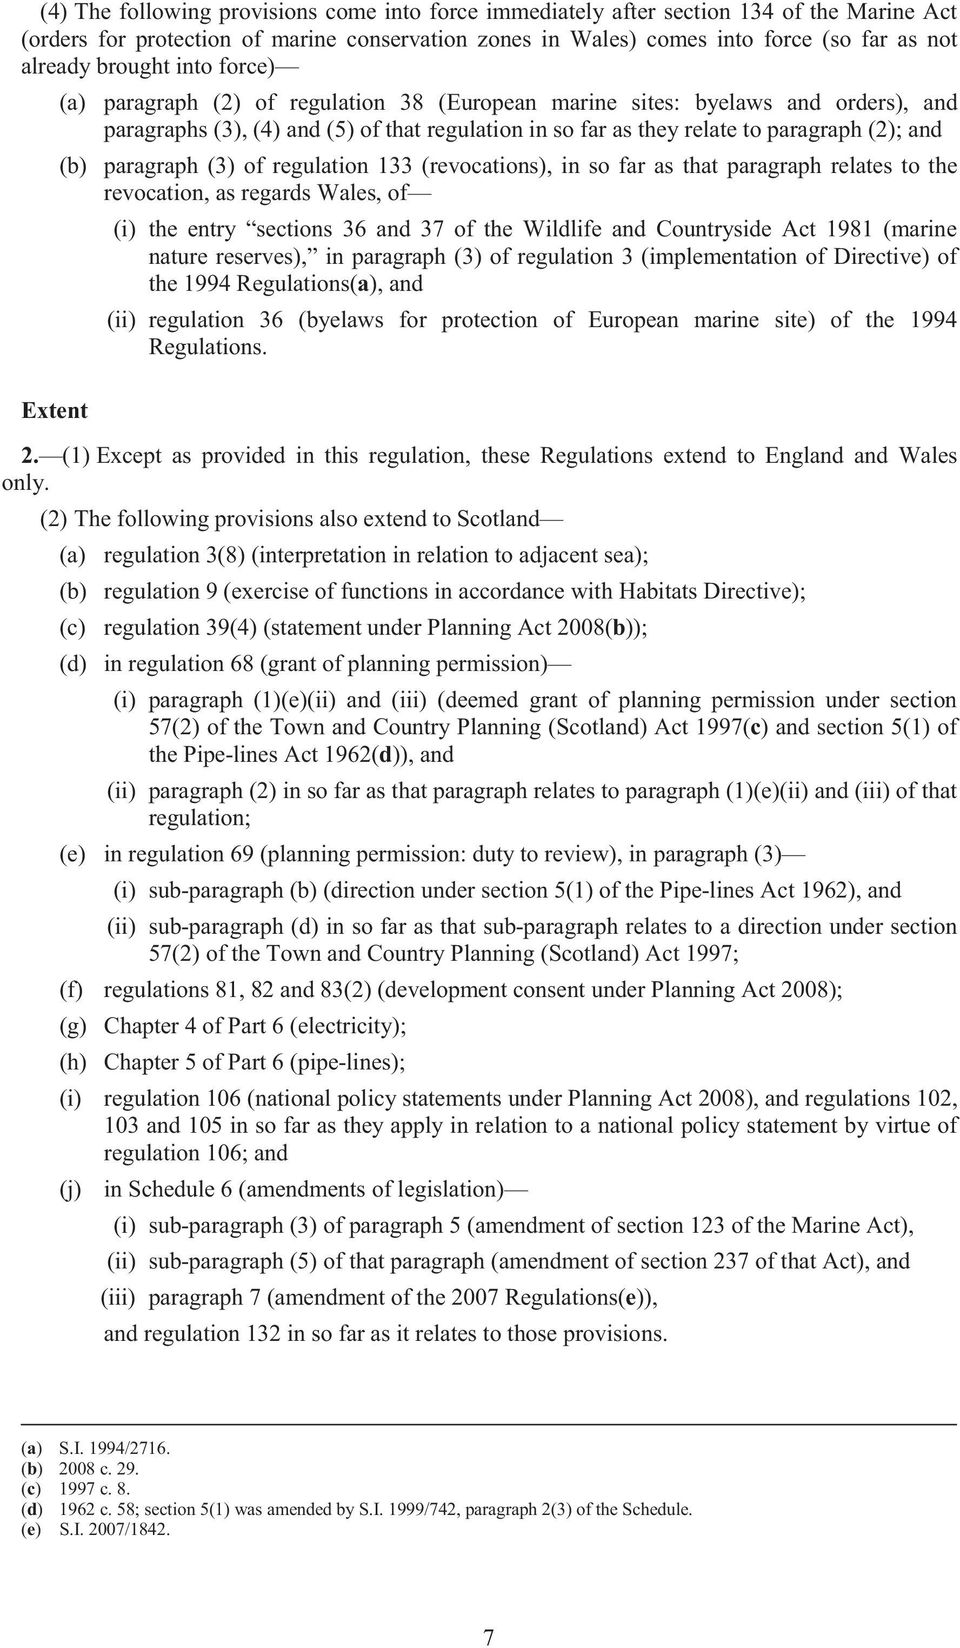 (b) paragraph (3) of regulation 133 (revocations), in so far as that paragraph relates to the revocation, as regards Wales, of (i) the entry sections 36 and 37 of the Wildlife and Countryside Act